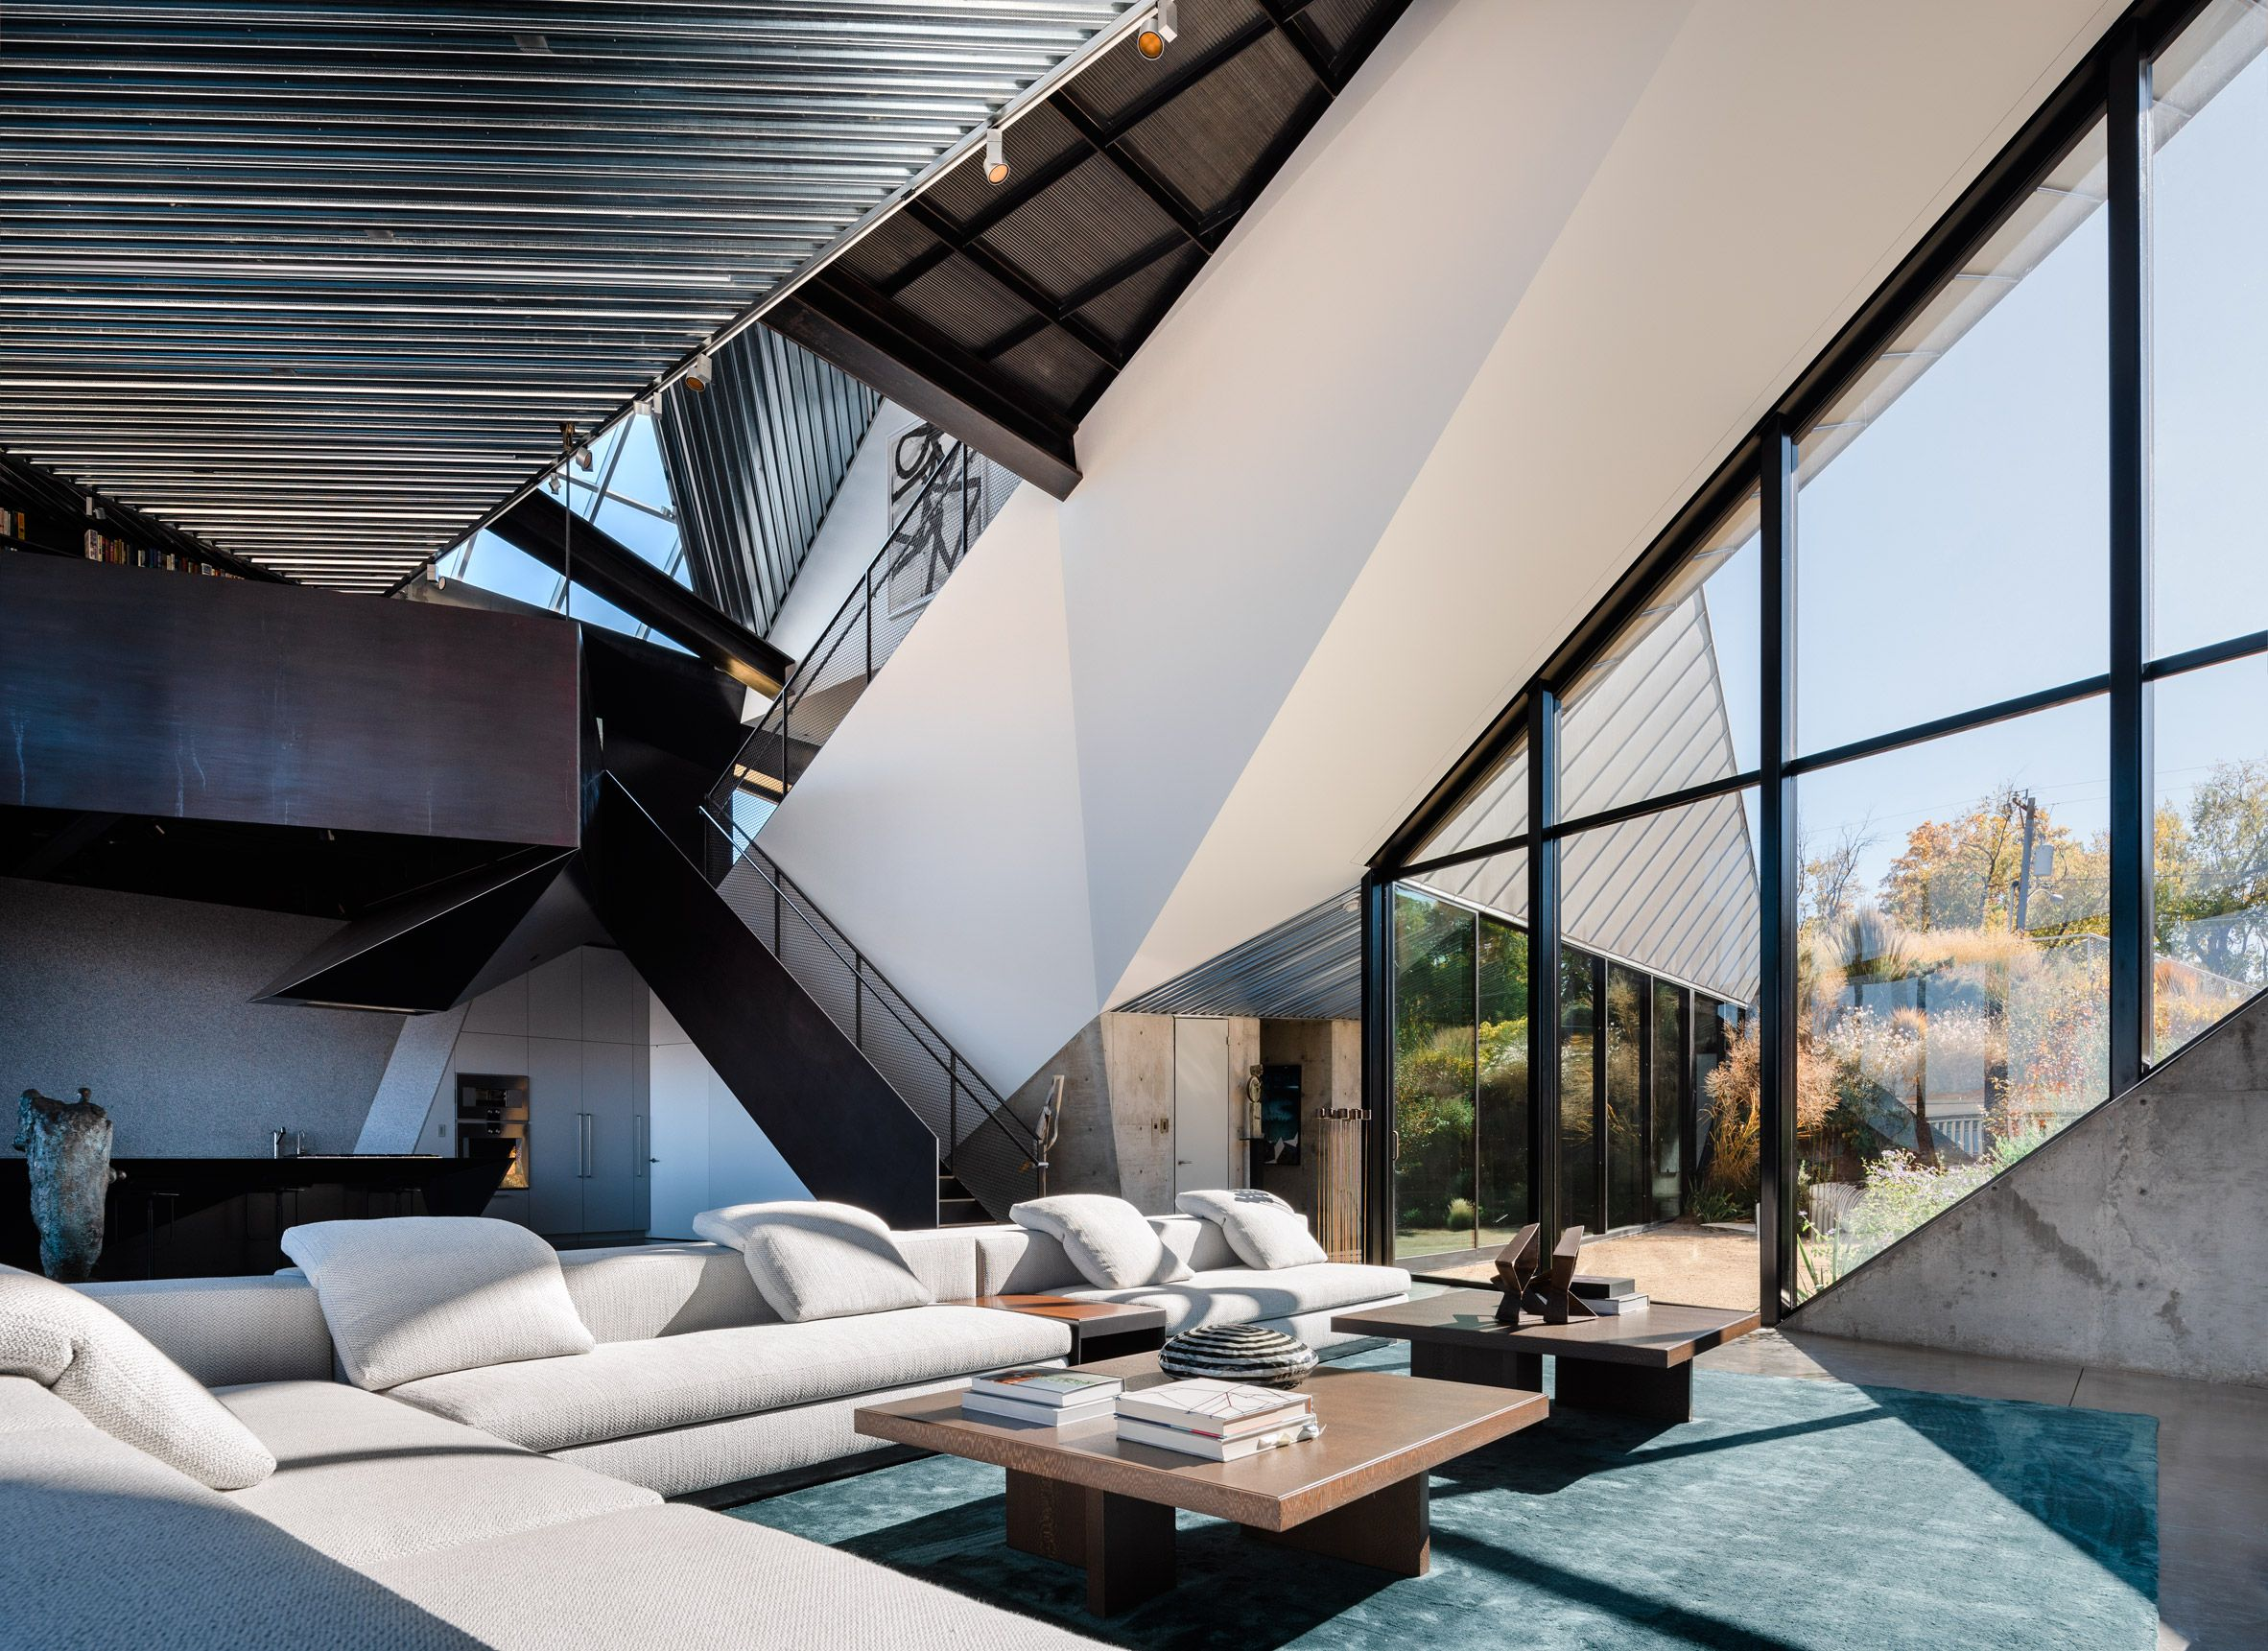 The house was designed with a highly contemporary and ...